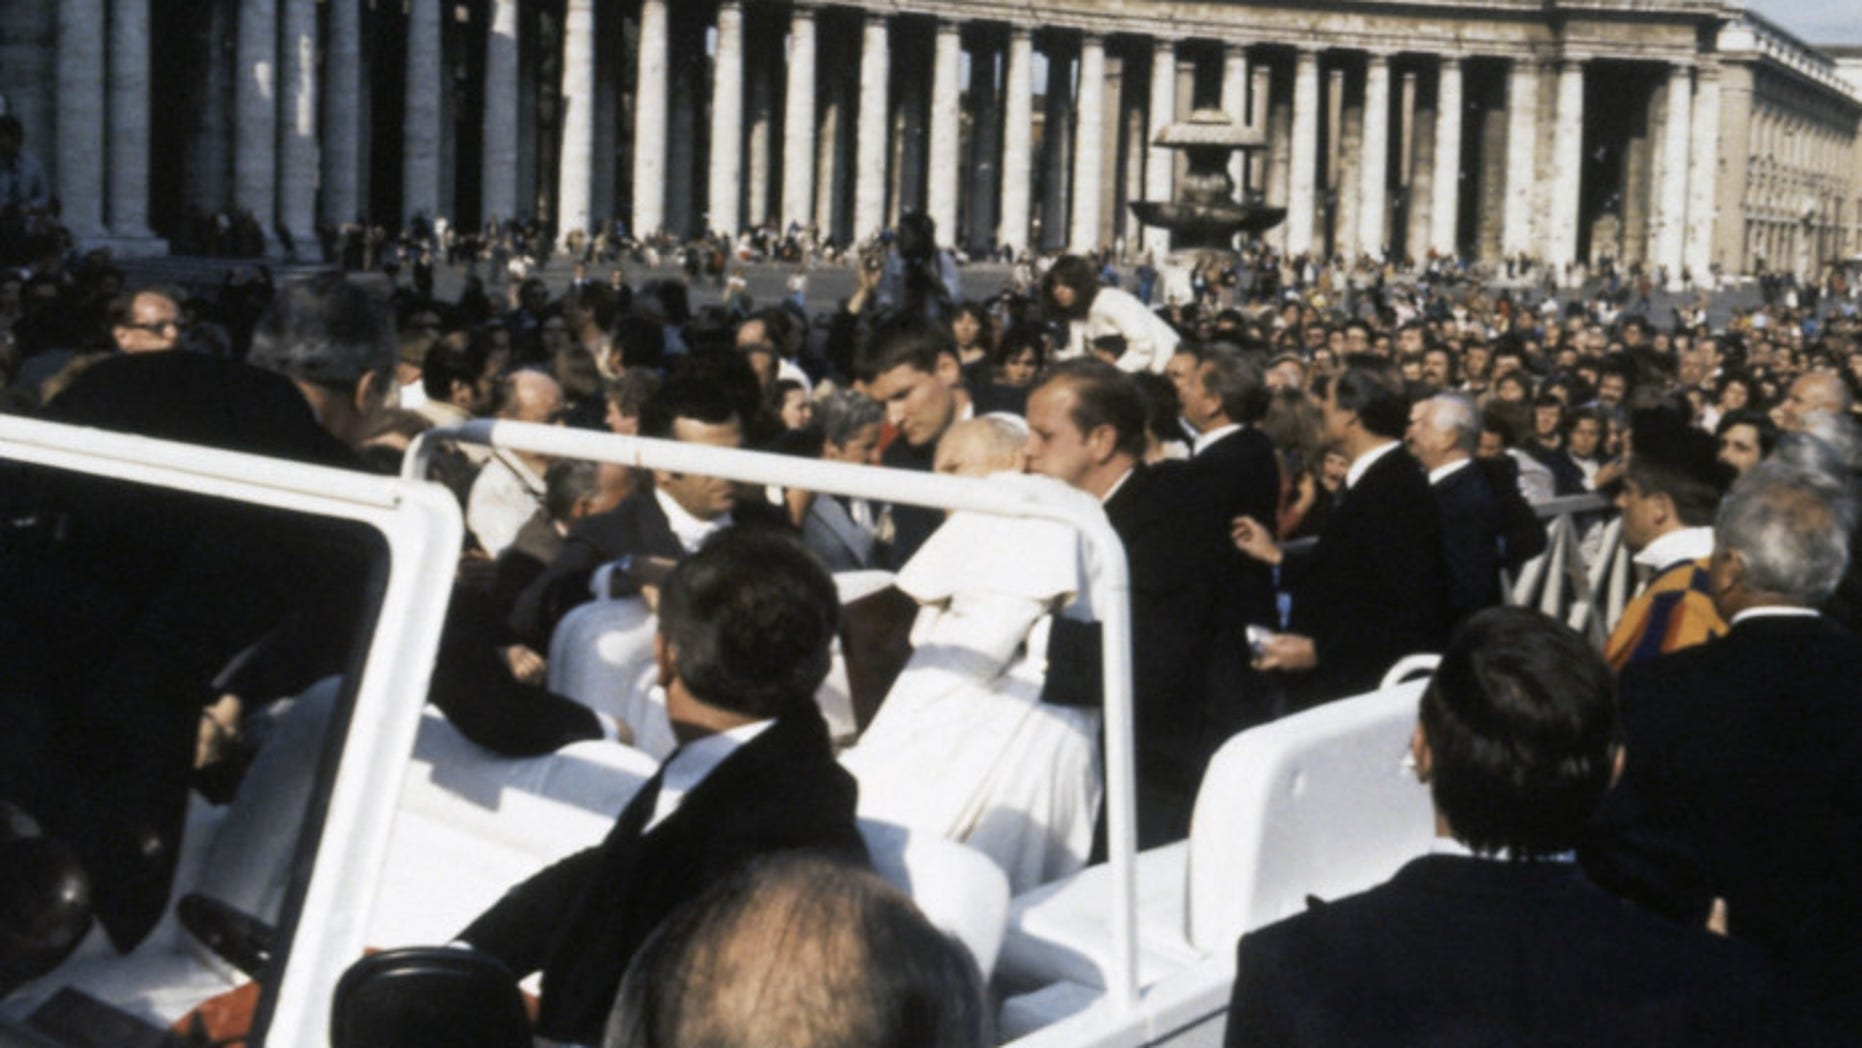 Pope John Paul II is held up by his secretary, Stanislaw Dziwisz after being shot at by Turkish student Ali Acga and seriously wounded in Vatican City on May 13, 1981. The Assassination attempt took place during the regular general audience in St. Peter's Square on Wednesday. (AP Photo/Arturo Mari)